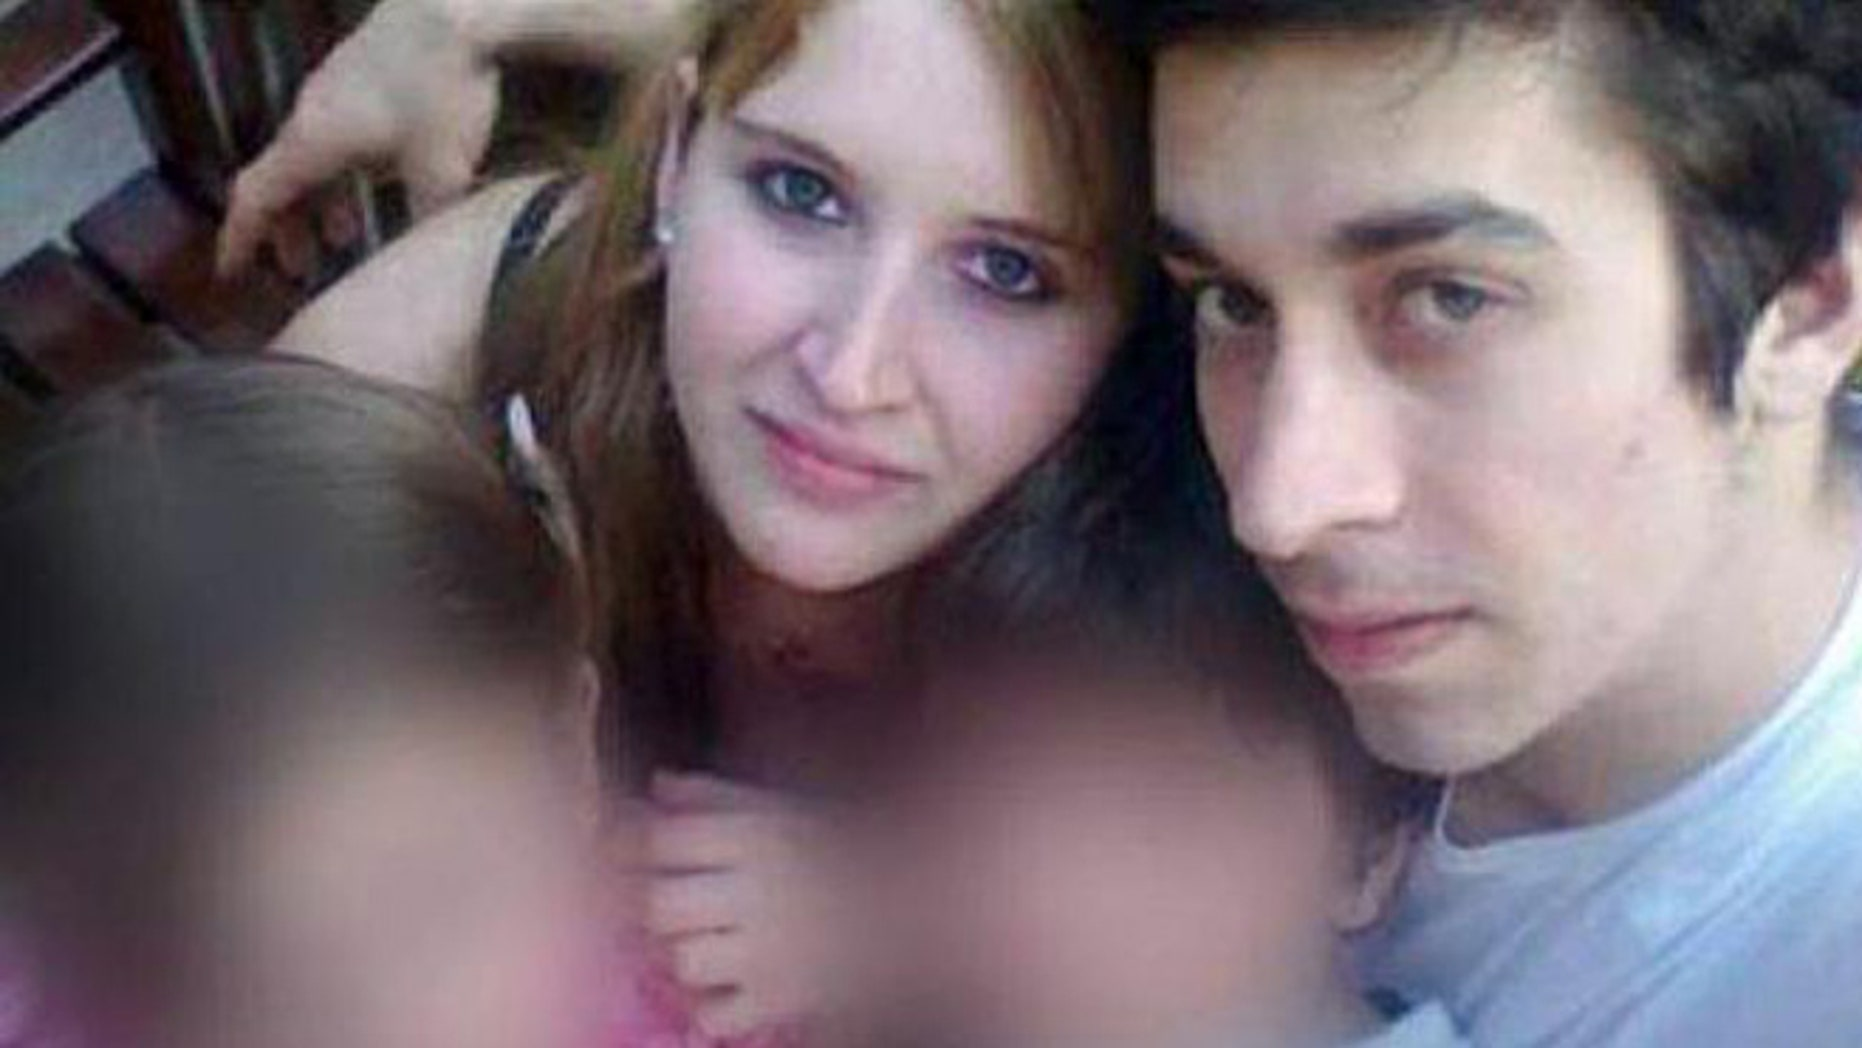 Accused lovers and step siblings Leandro Acosta and Karen Klein were arrested over the death of their parents.